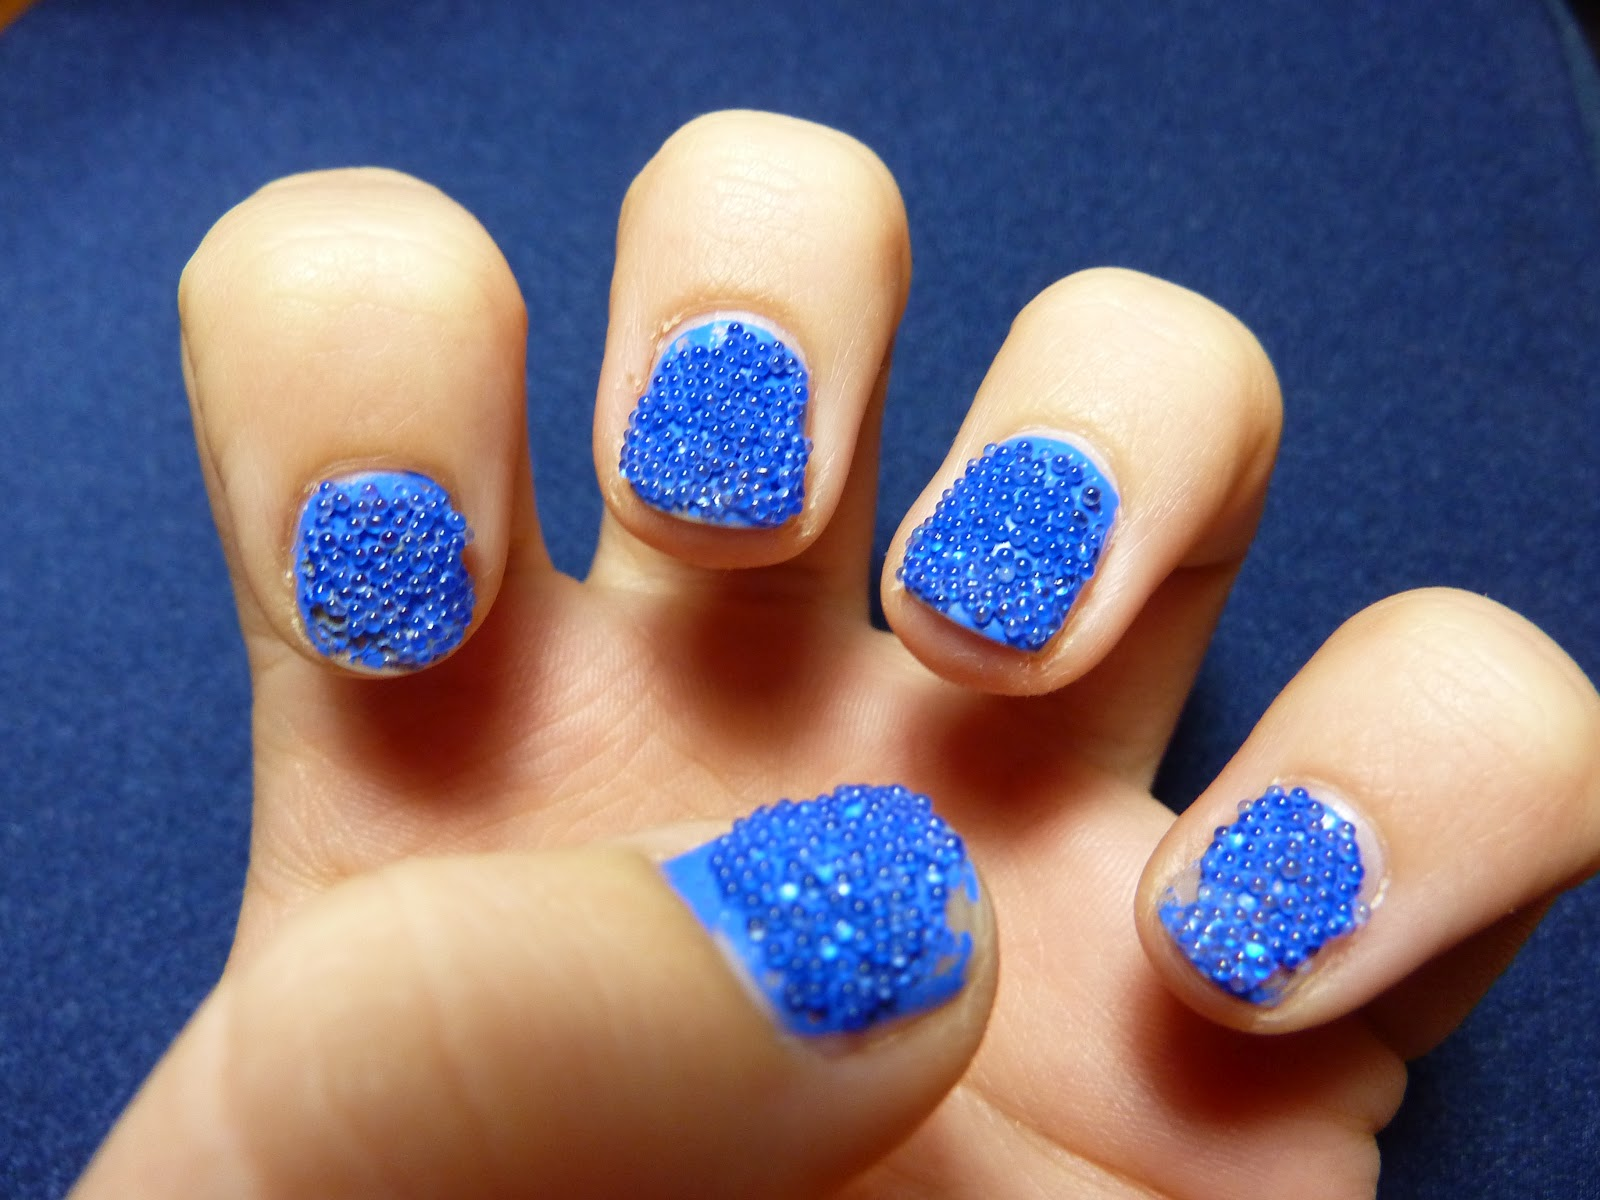 Pin by apri love4820 on nails designs pinterest - After